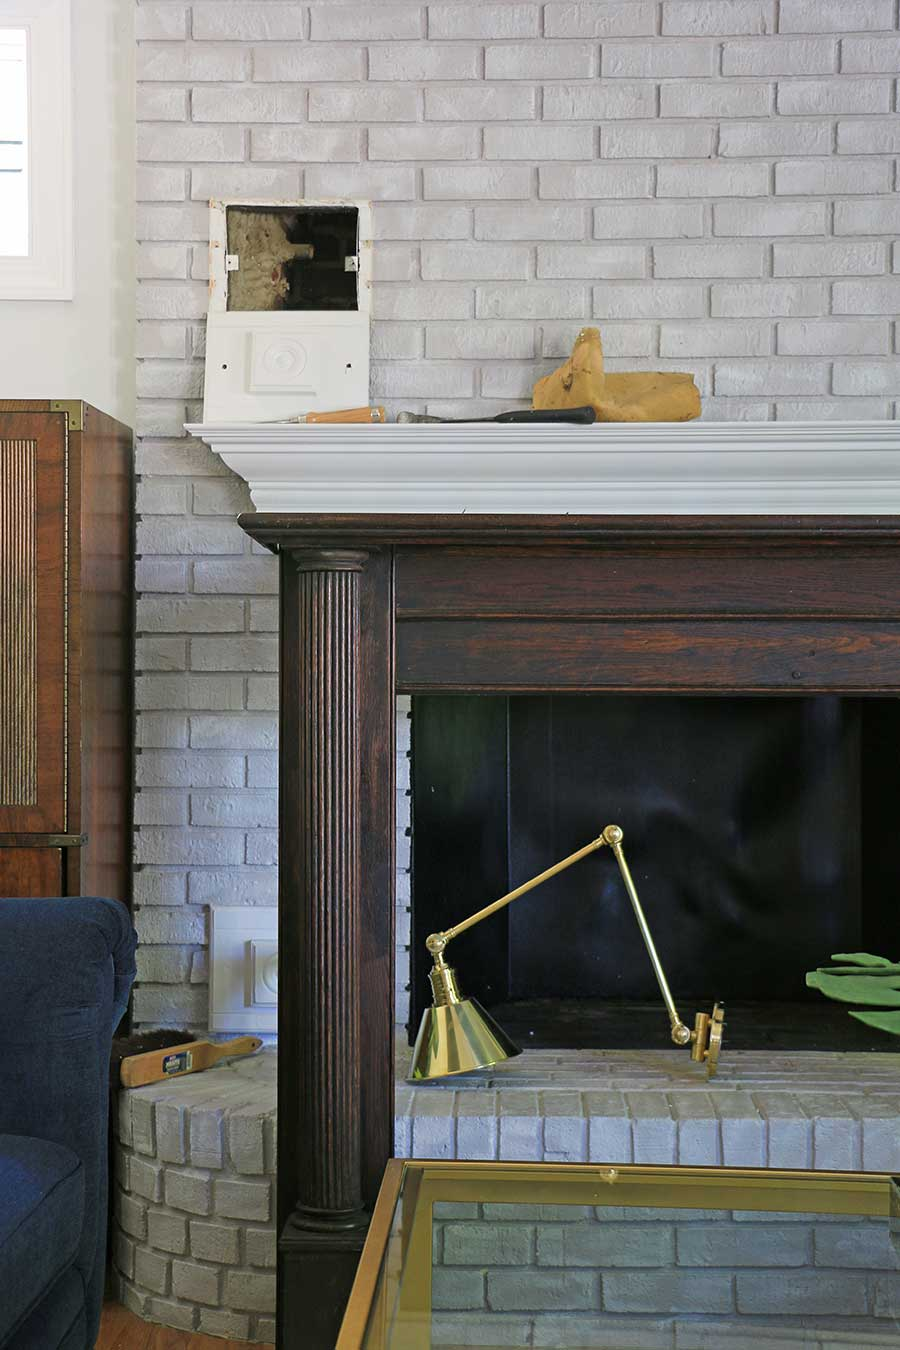 Fireplace with hole in brick